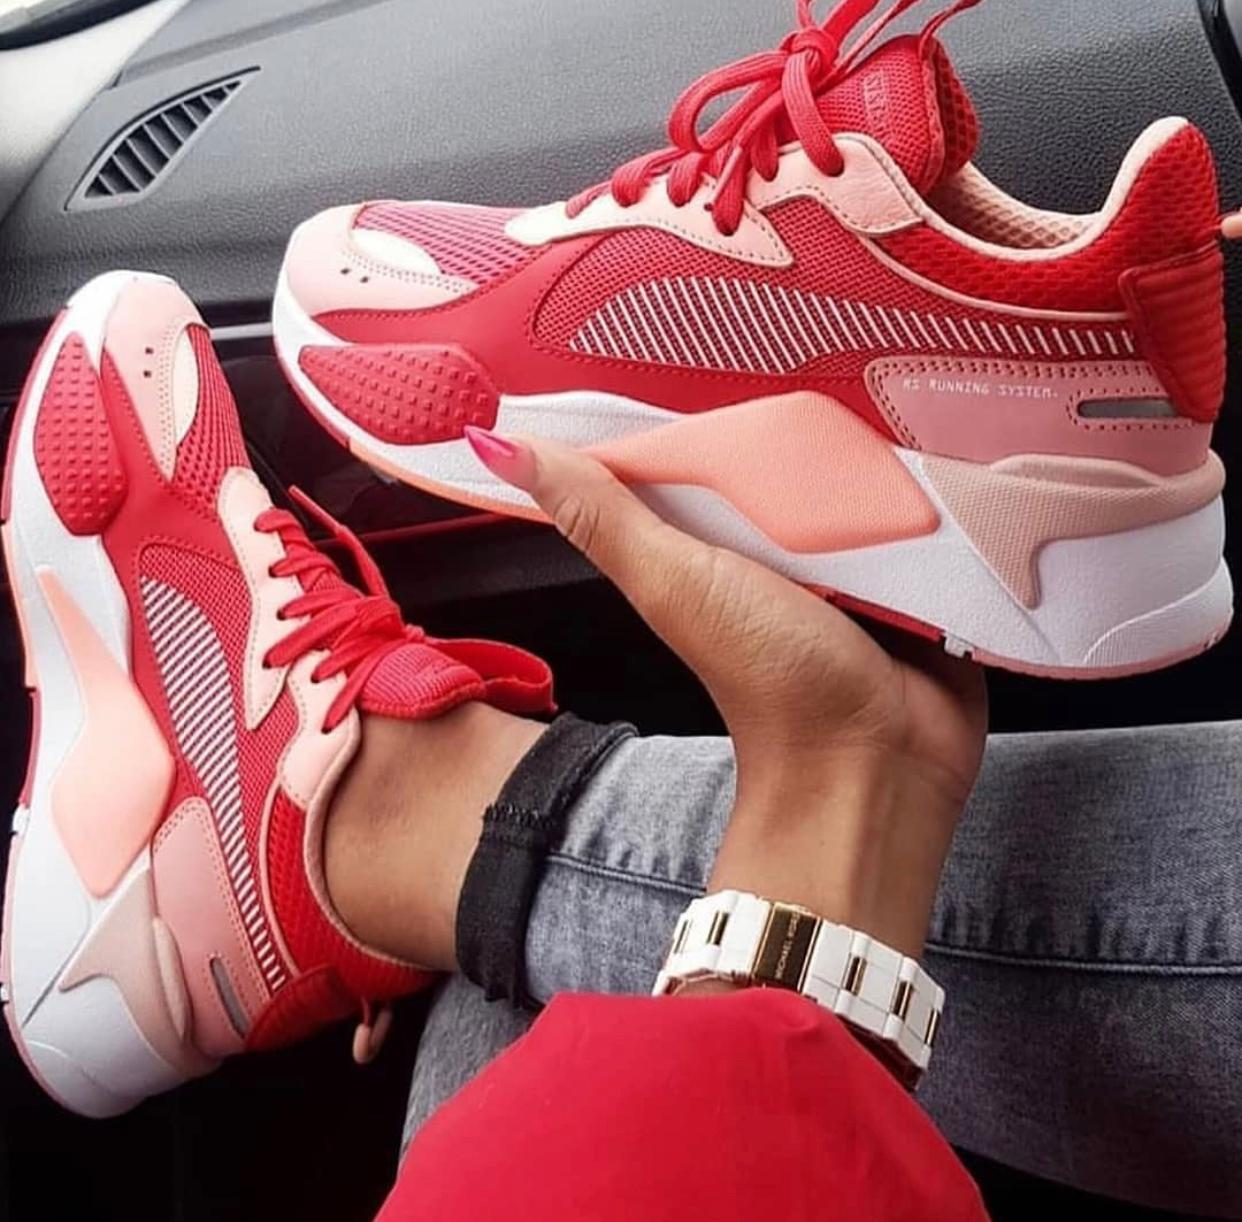 RED FASHION SNEAKERS FOR WOMEN